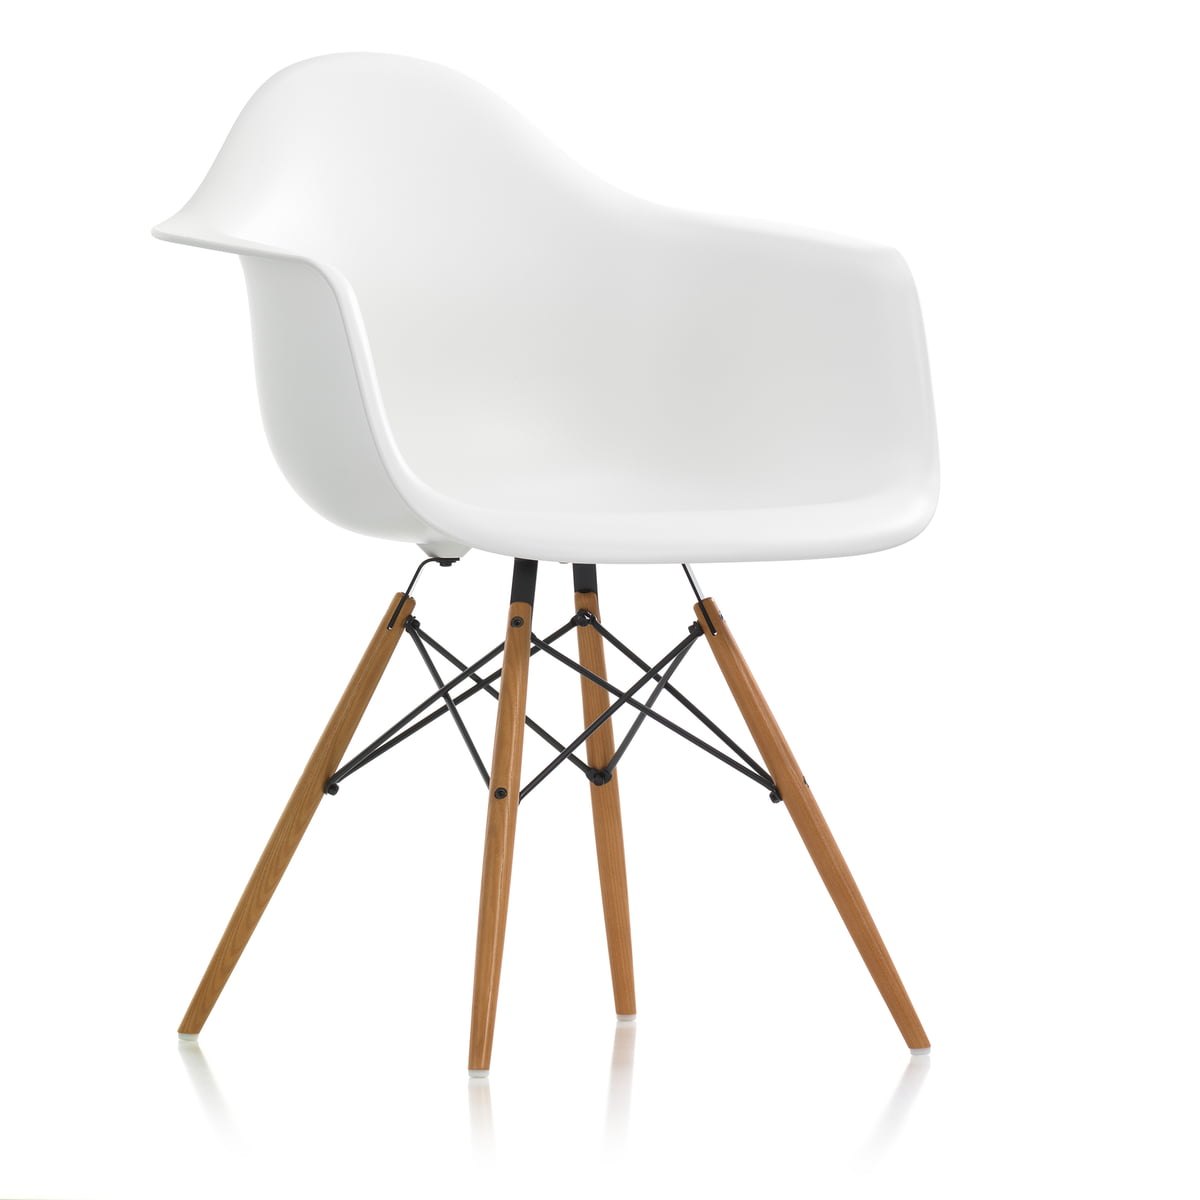 Charles Eames Vitra Eames Daw Chair By Vitra In Our Design Shop